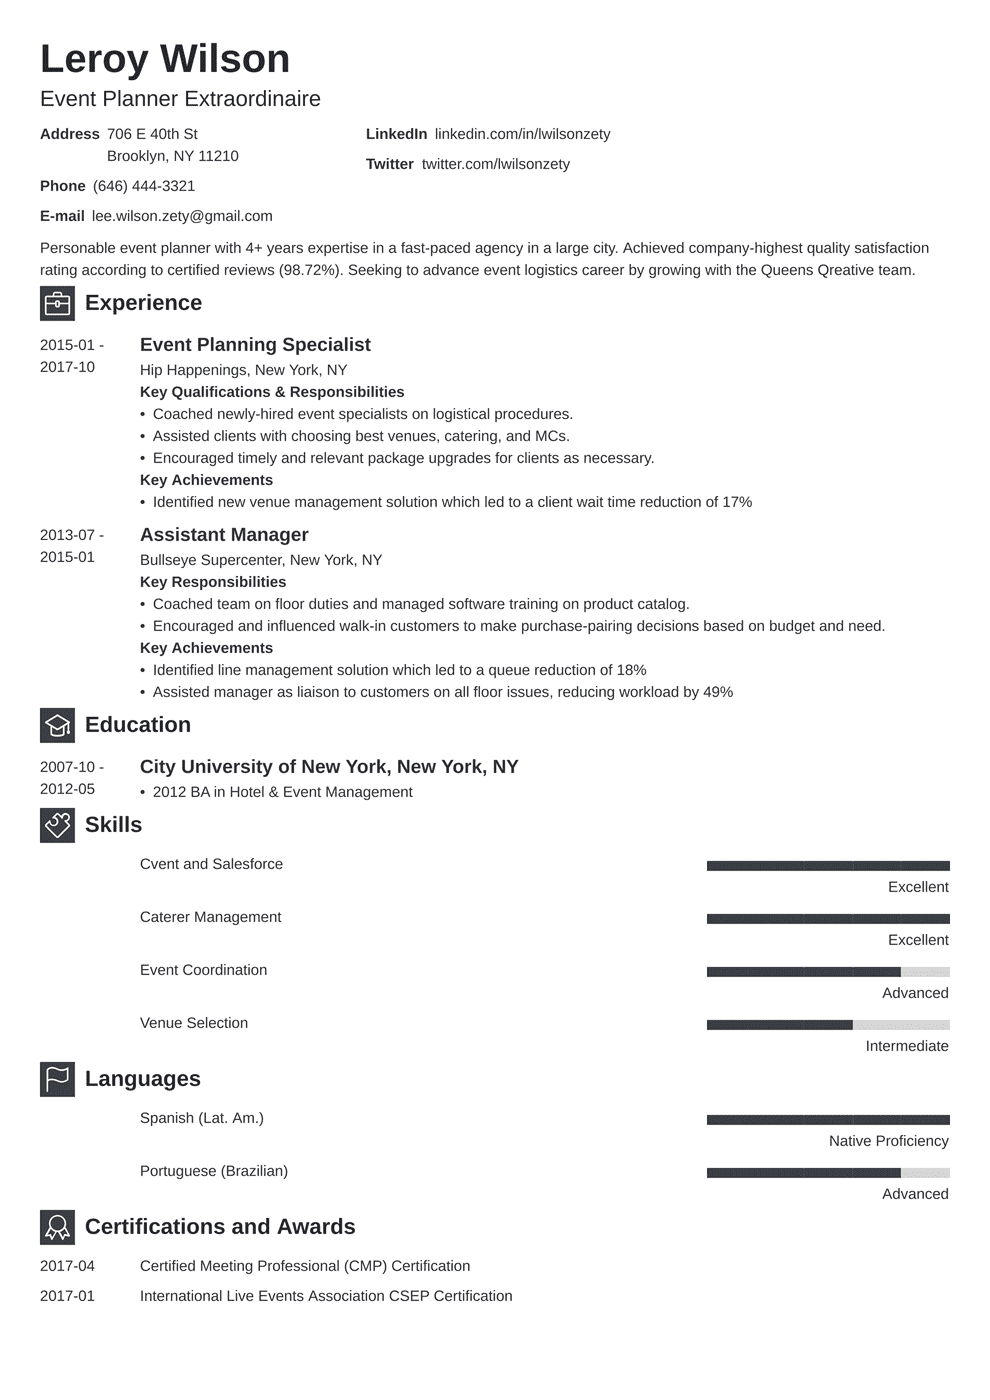 Event Planner Resume: Sample & Complete Guide [20+ Examples]